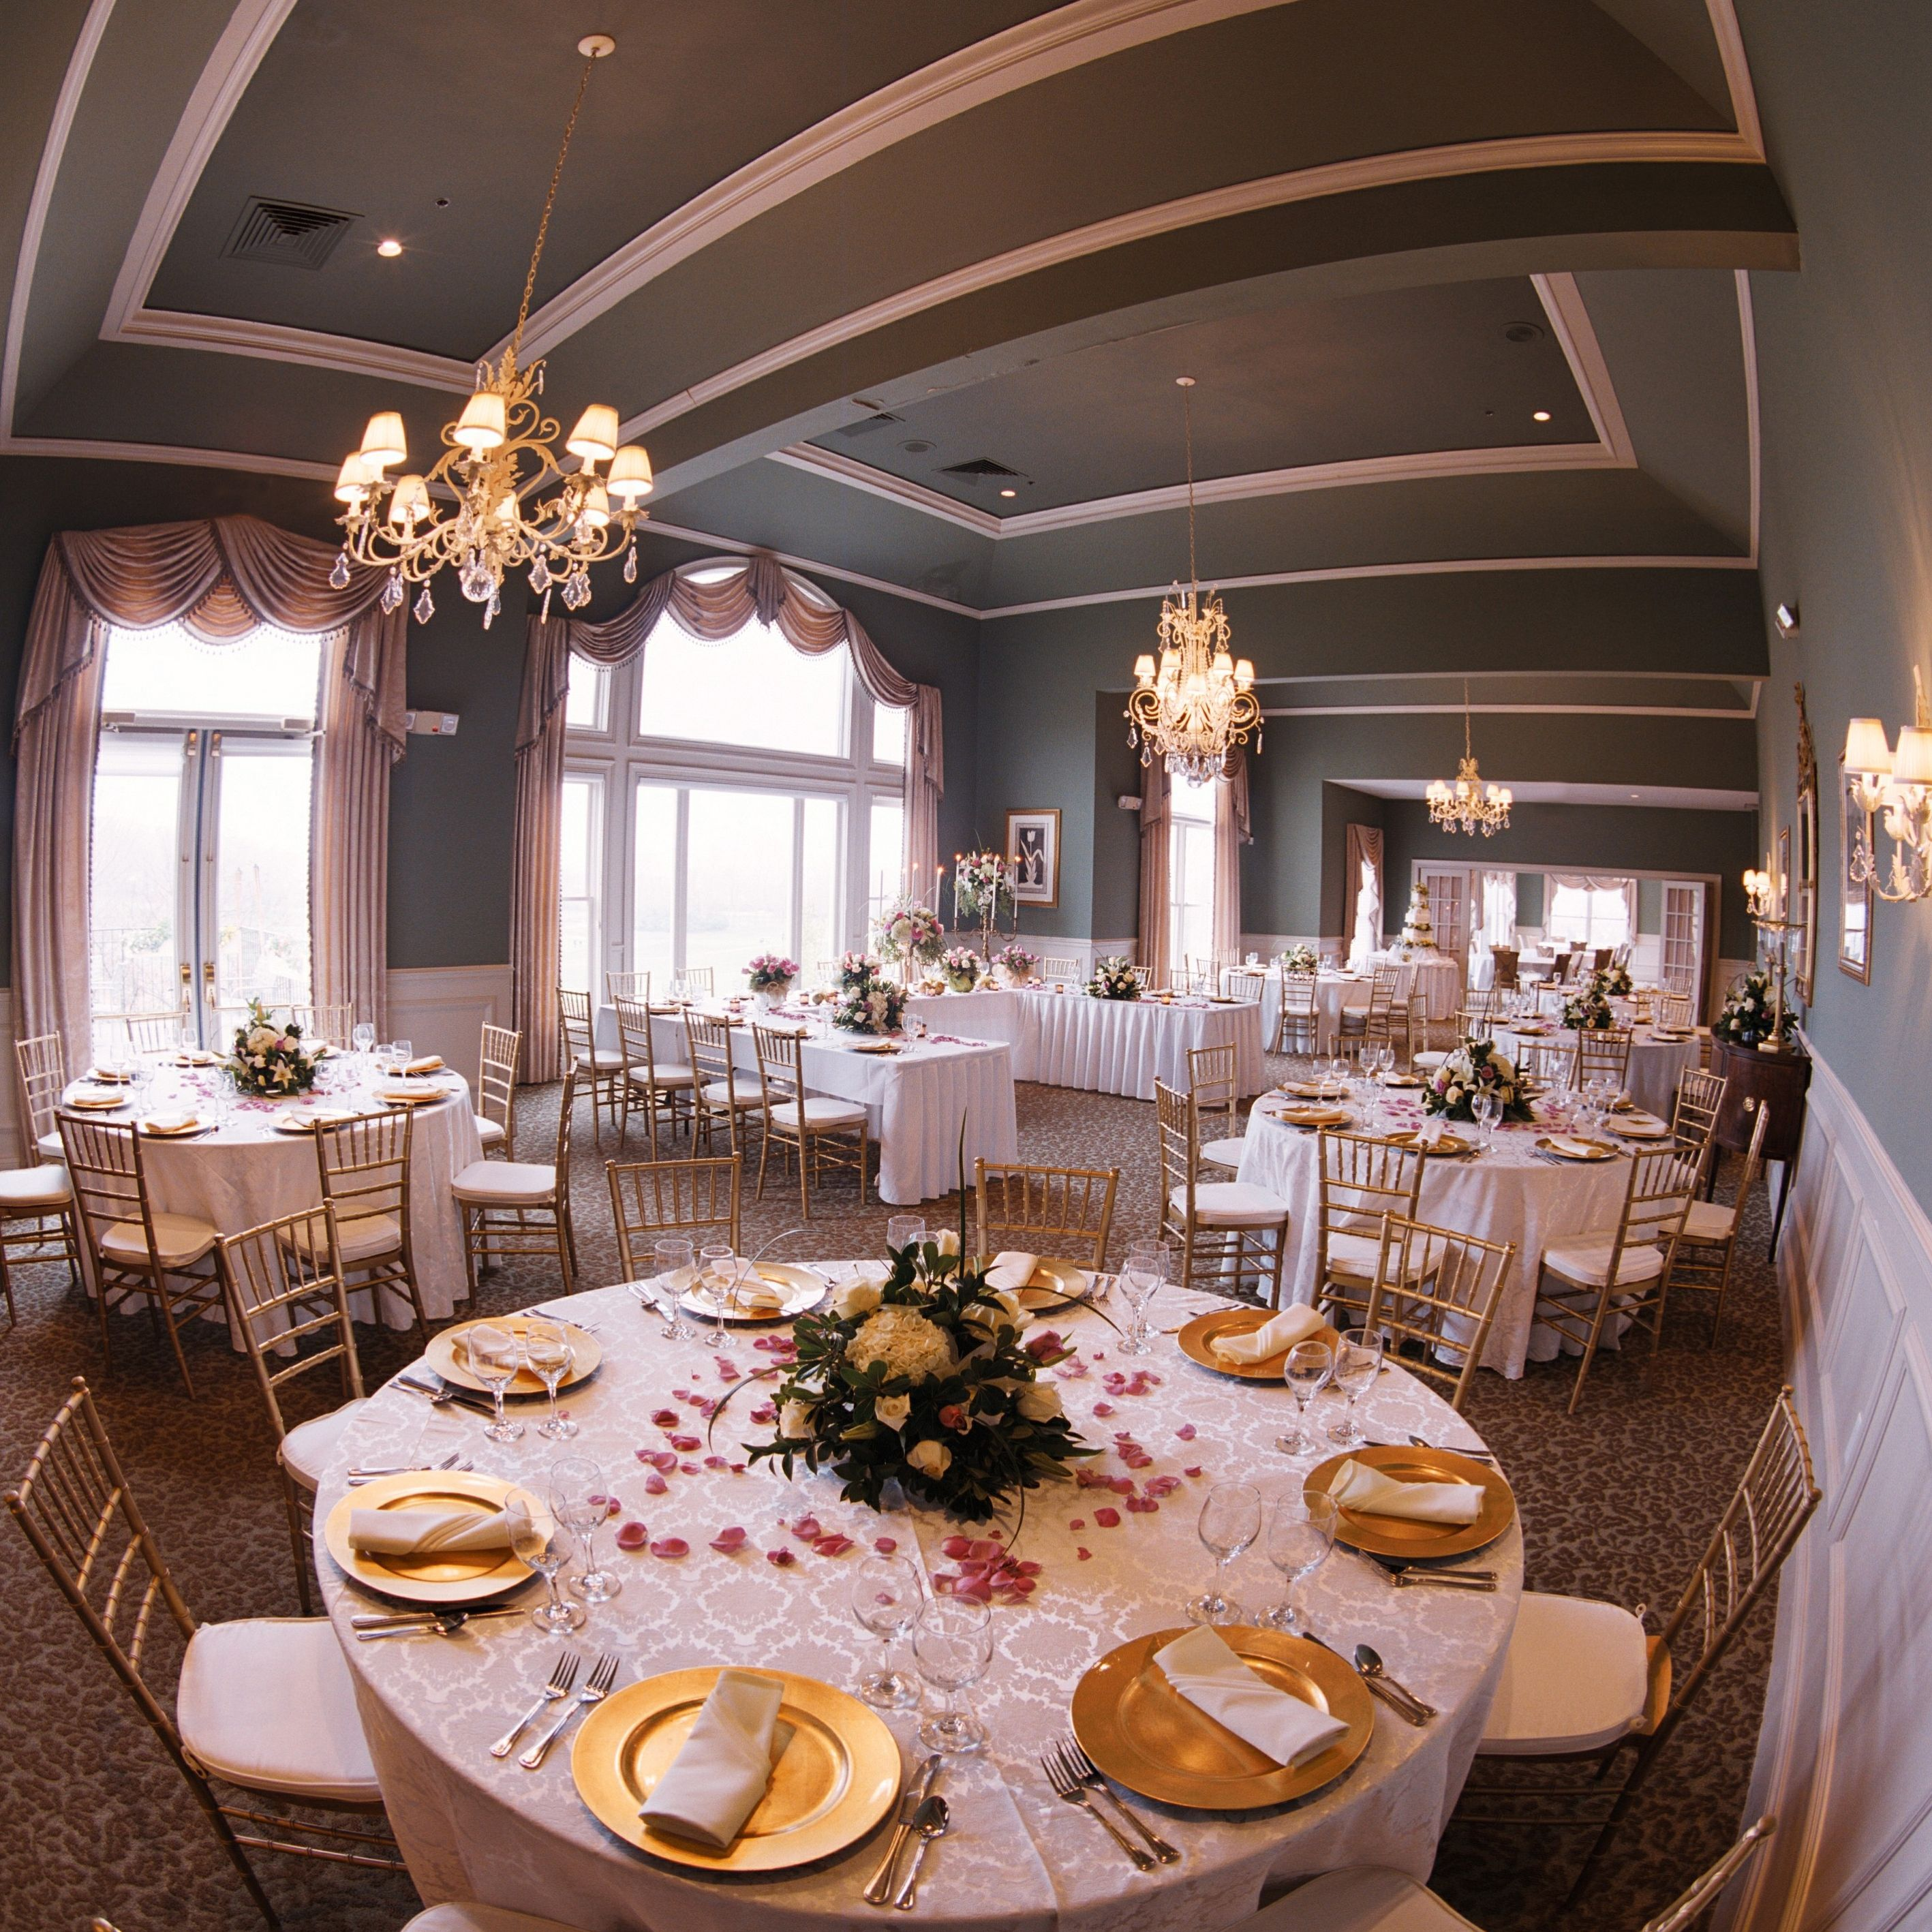 Party Halls In Cincinnati Ohio: The Ivy Room @ Ivy Hills Country Club-Cincinnati, OH